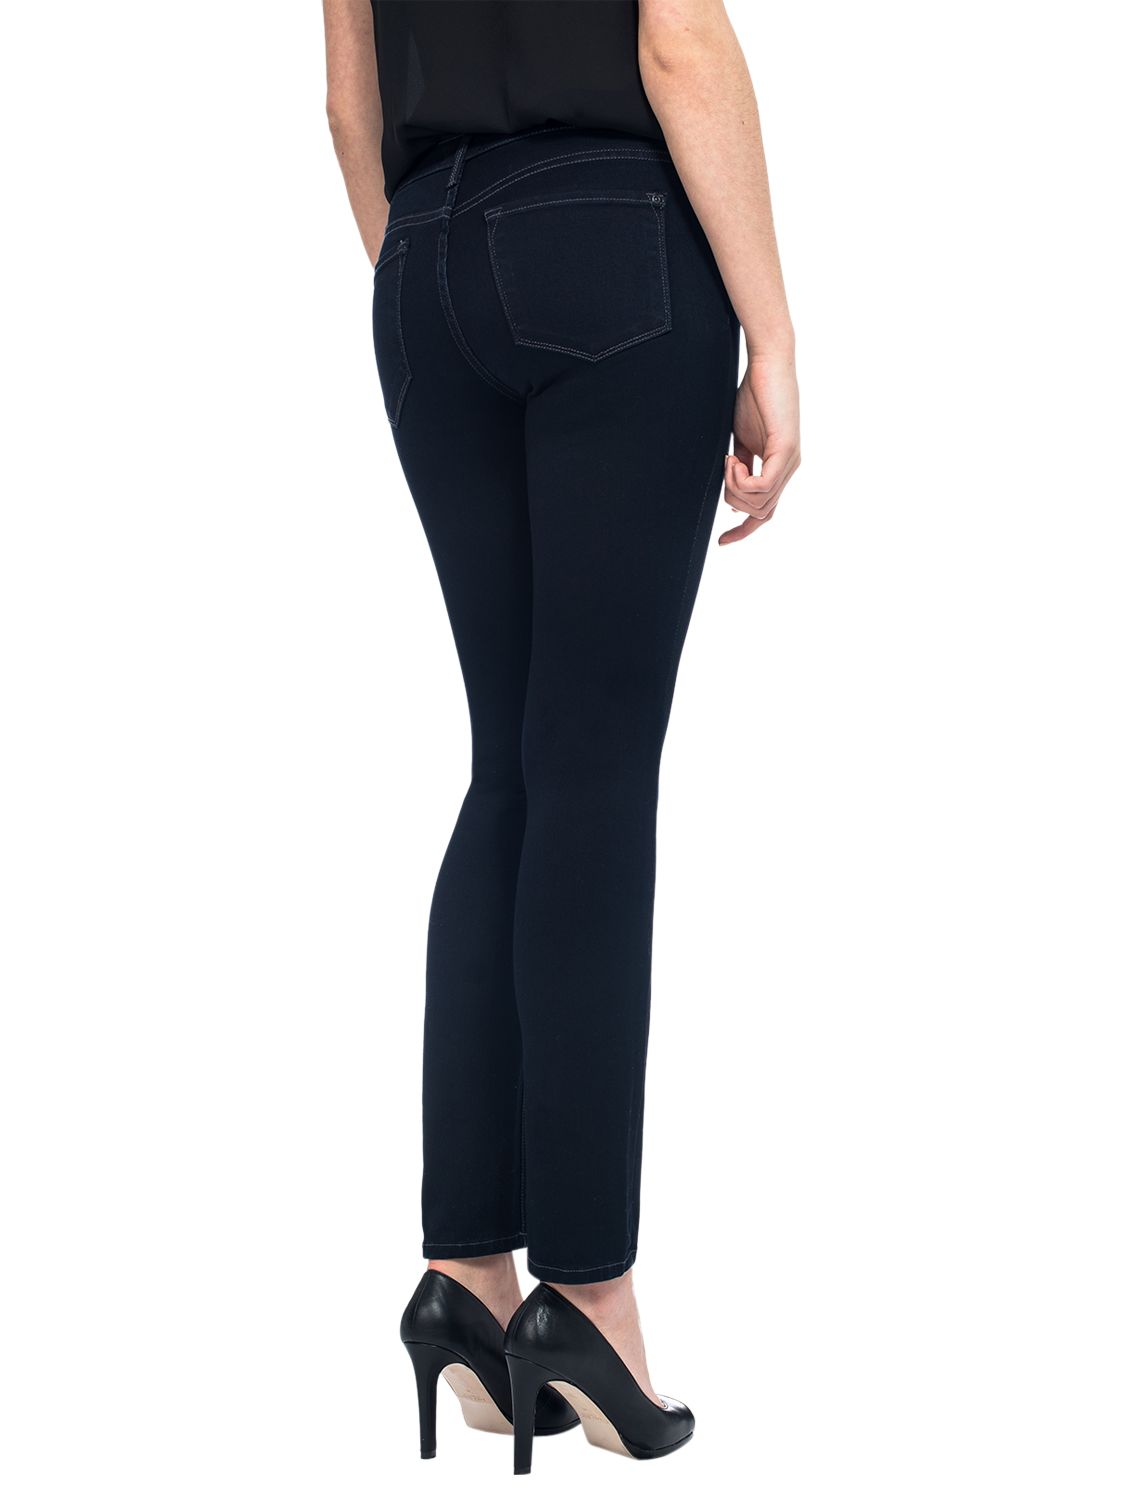 Nydj NYDJ Alina Slim Super Stretch Jeans, Navy